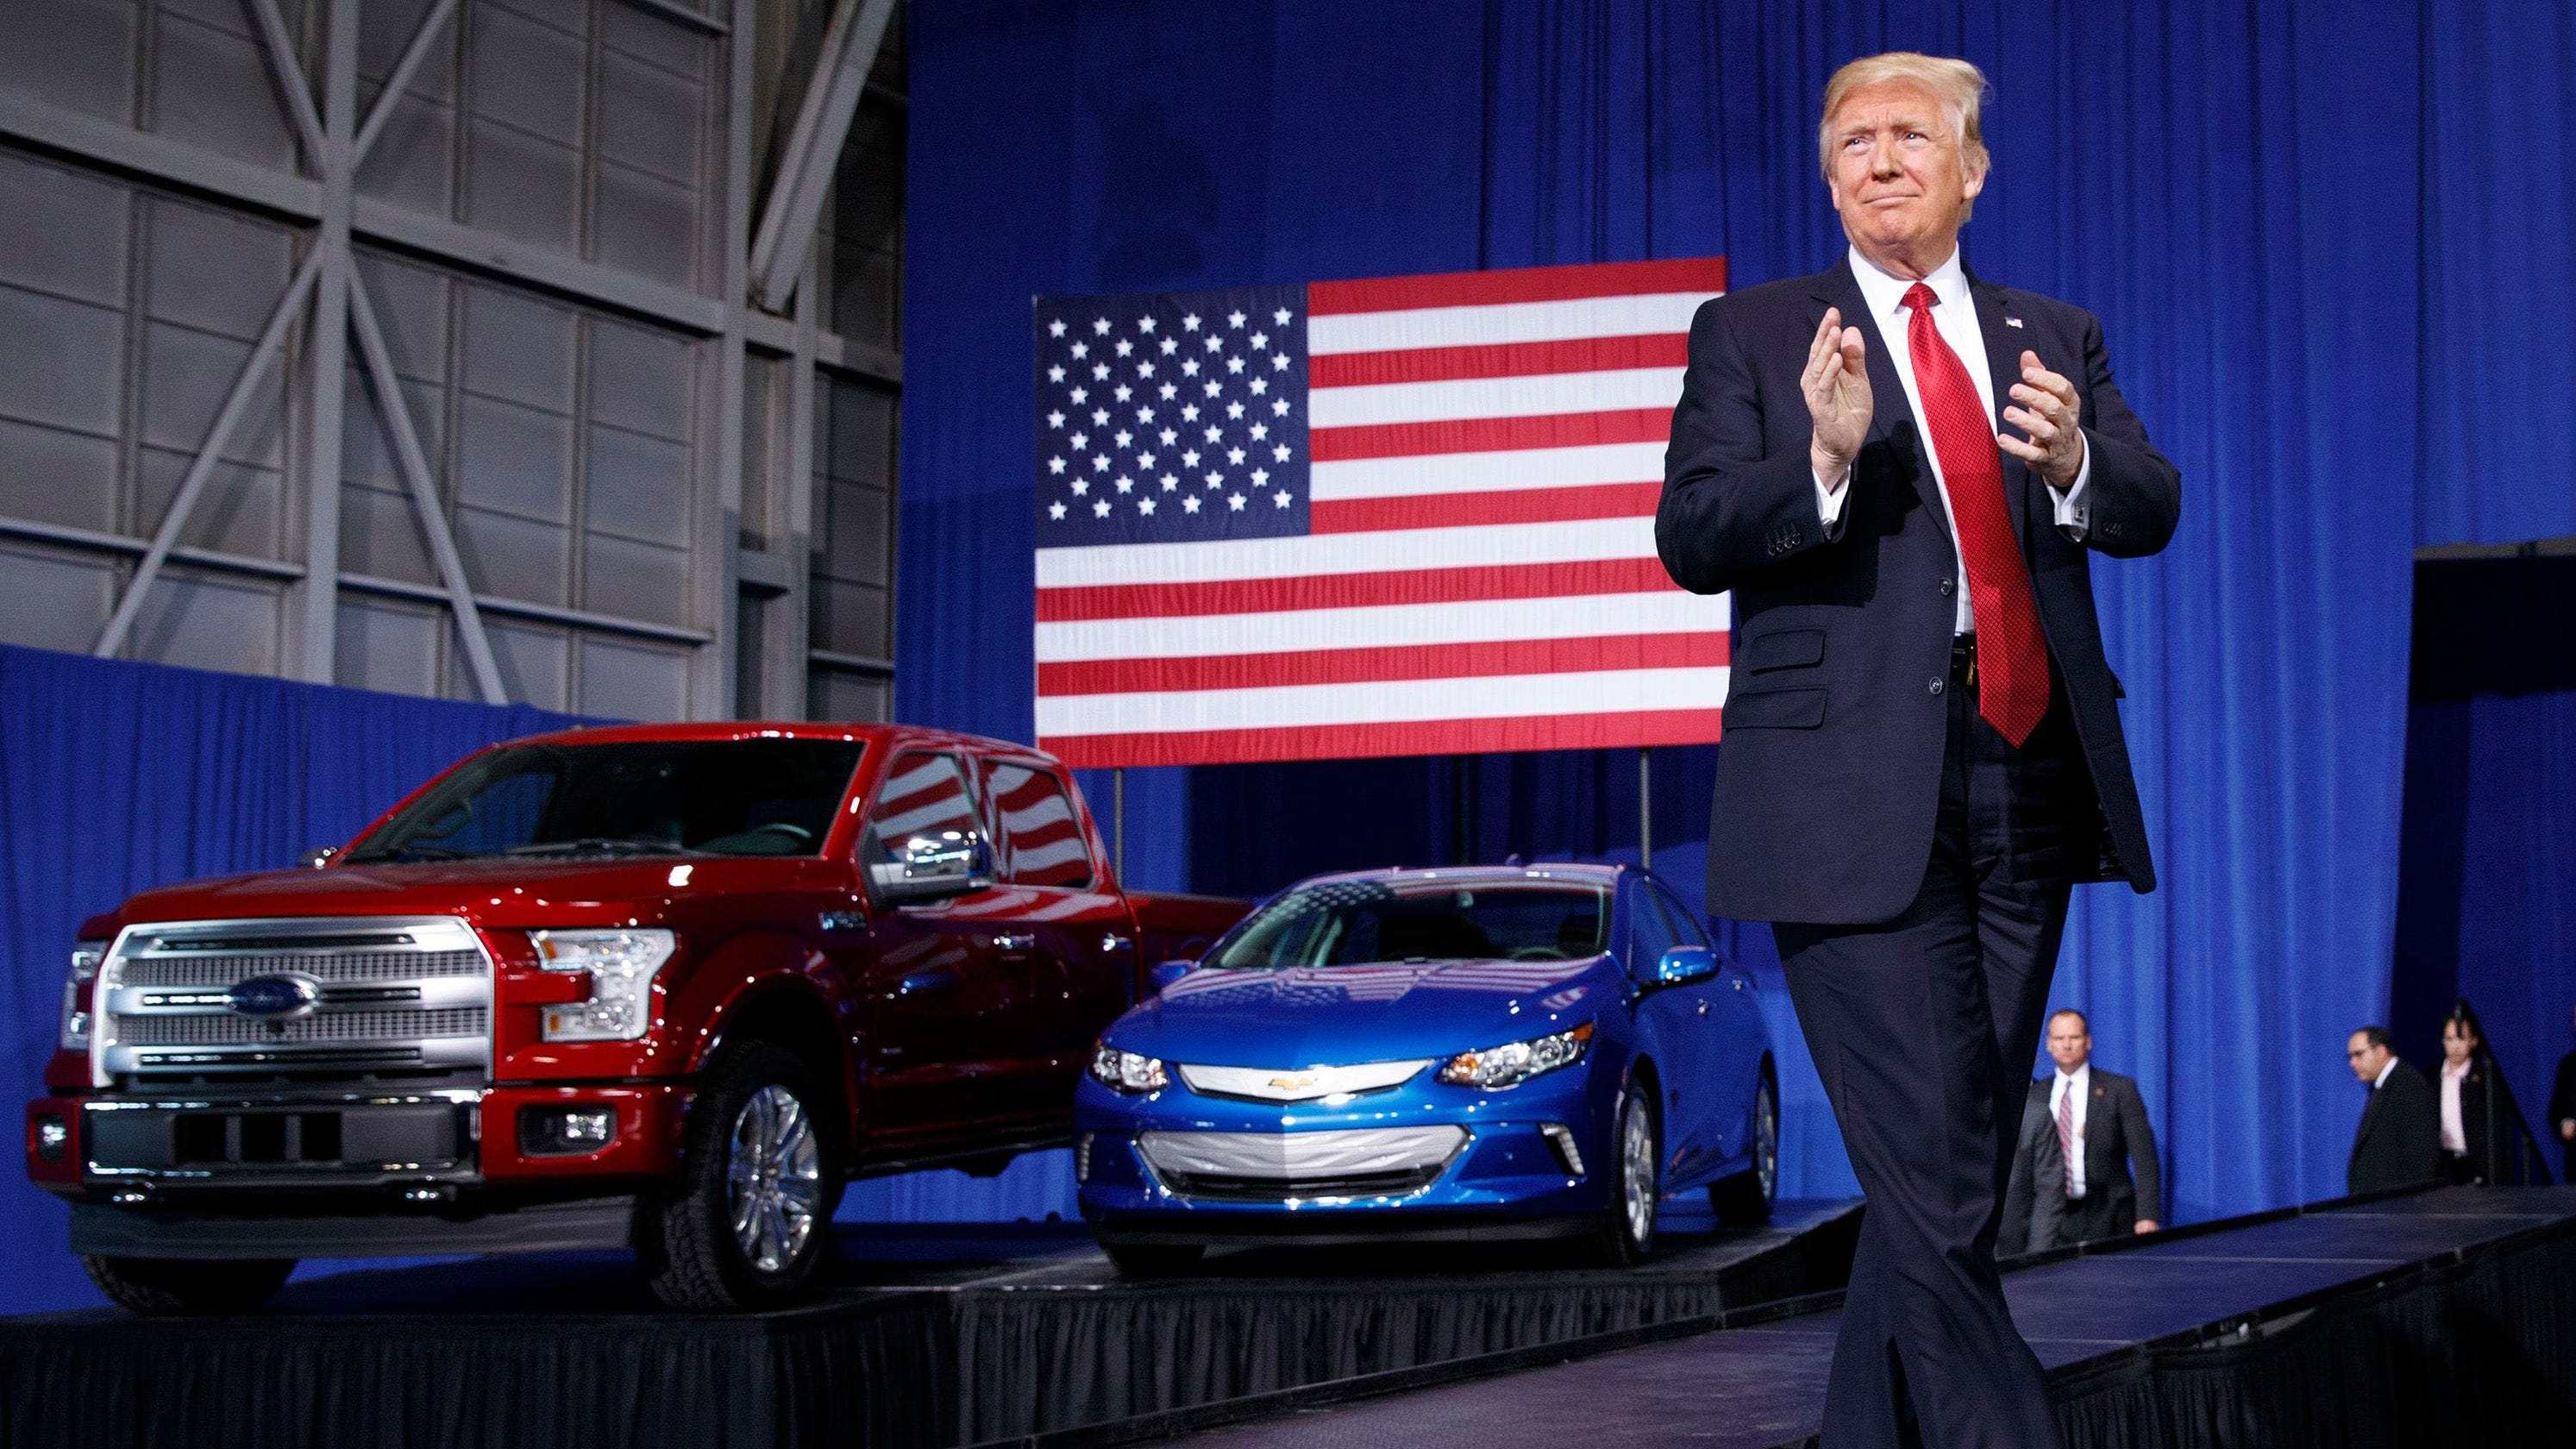 Ford and analysts say Trump's tweet on Focus is dead wrong